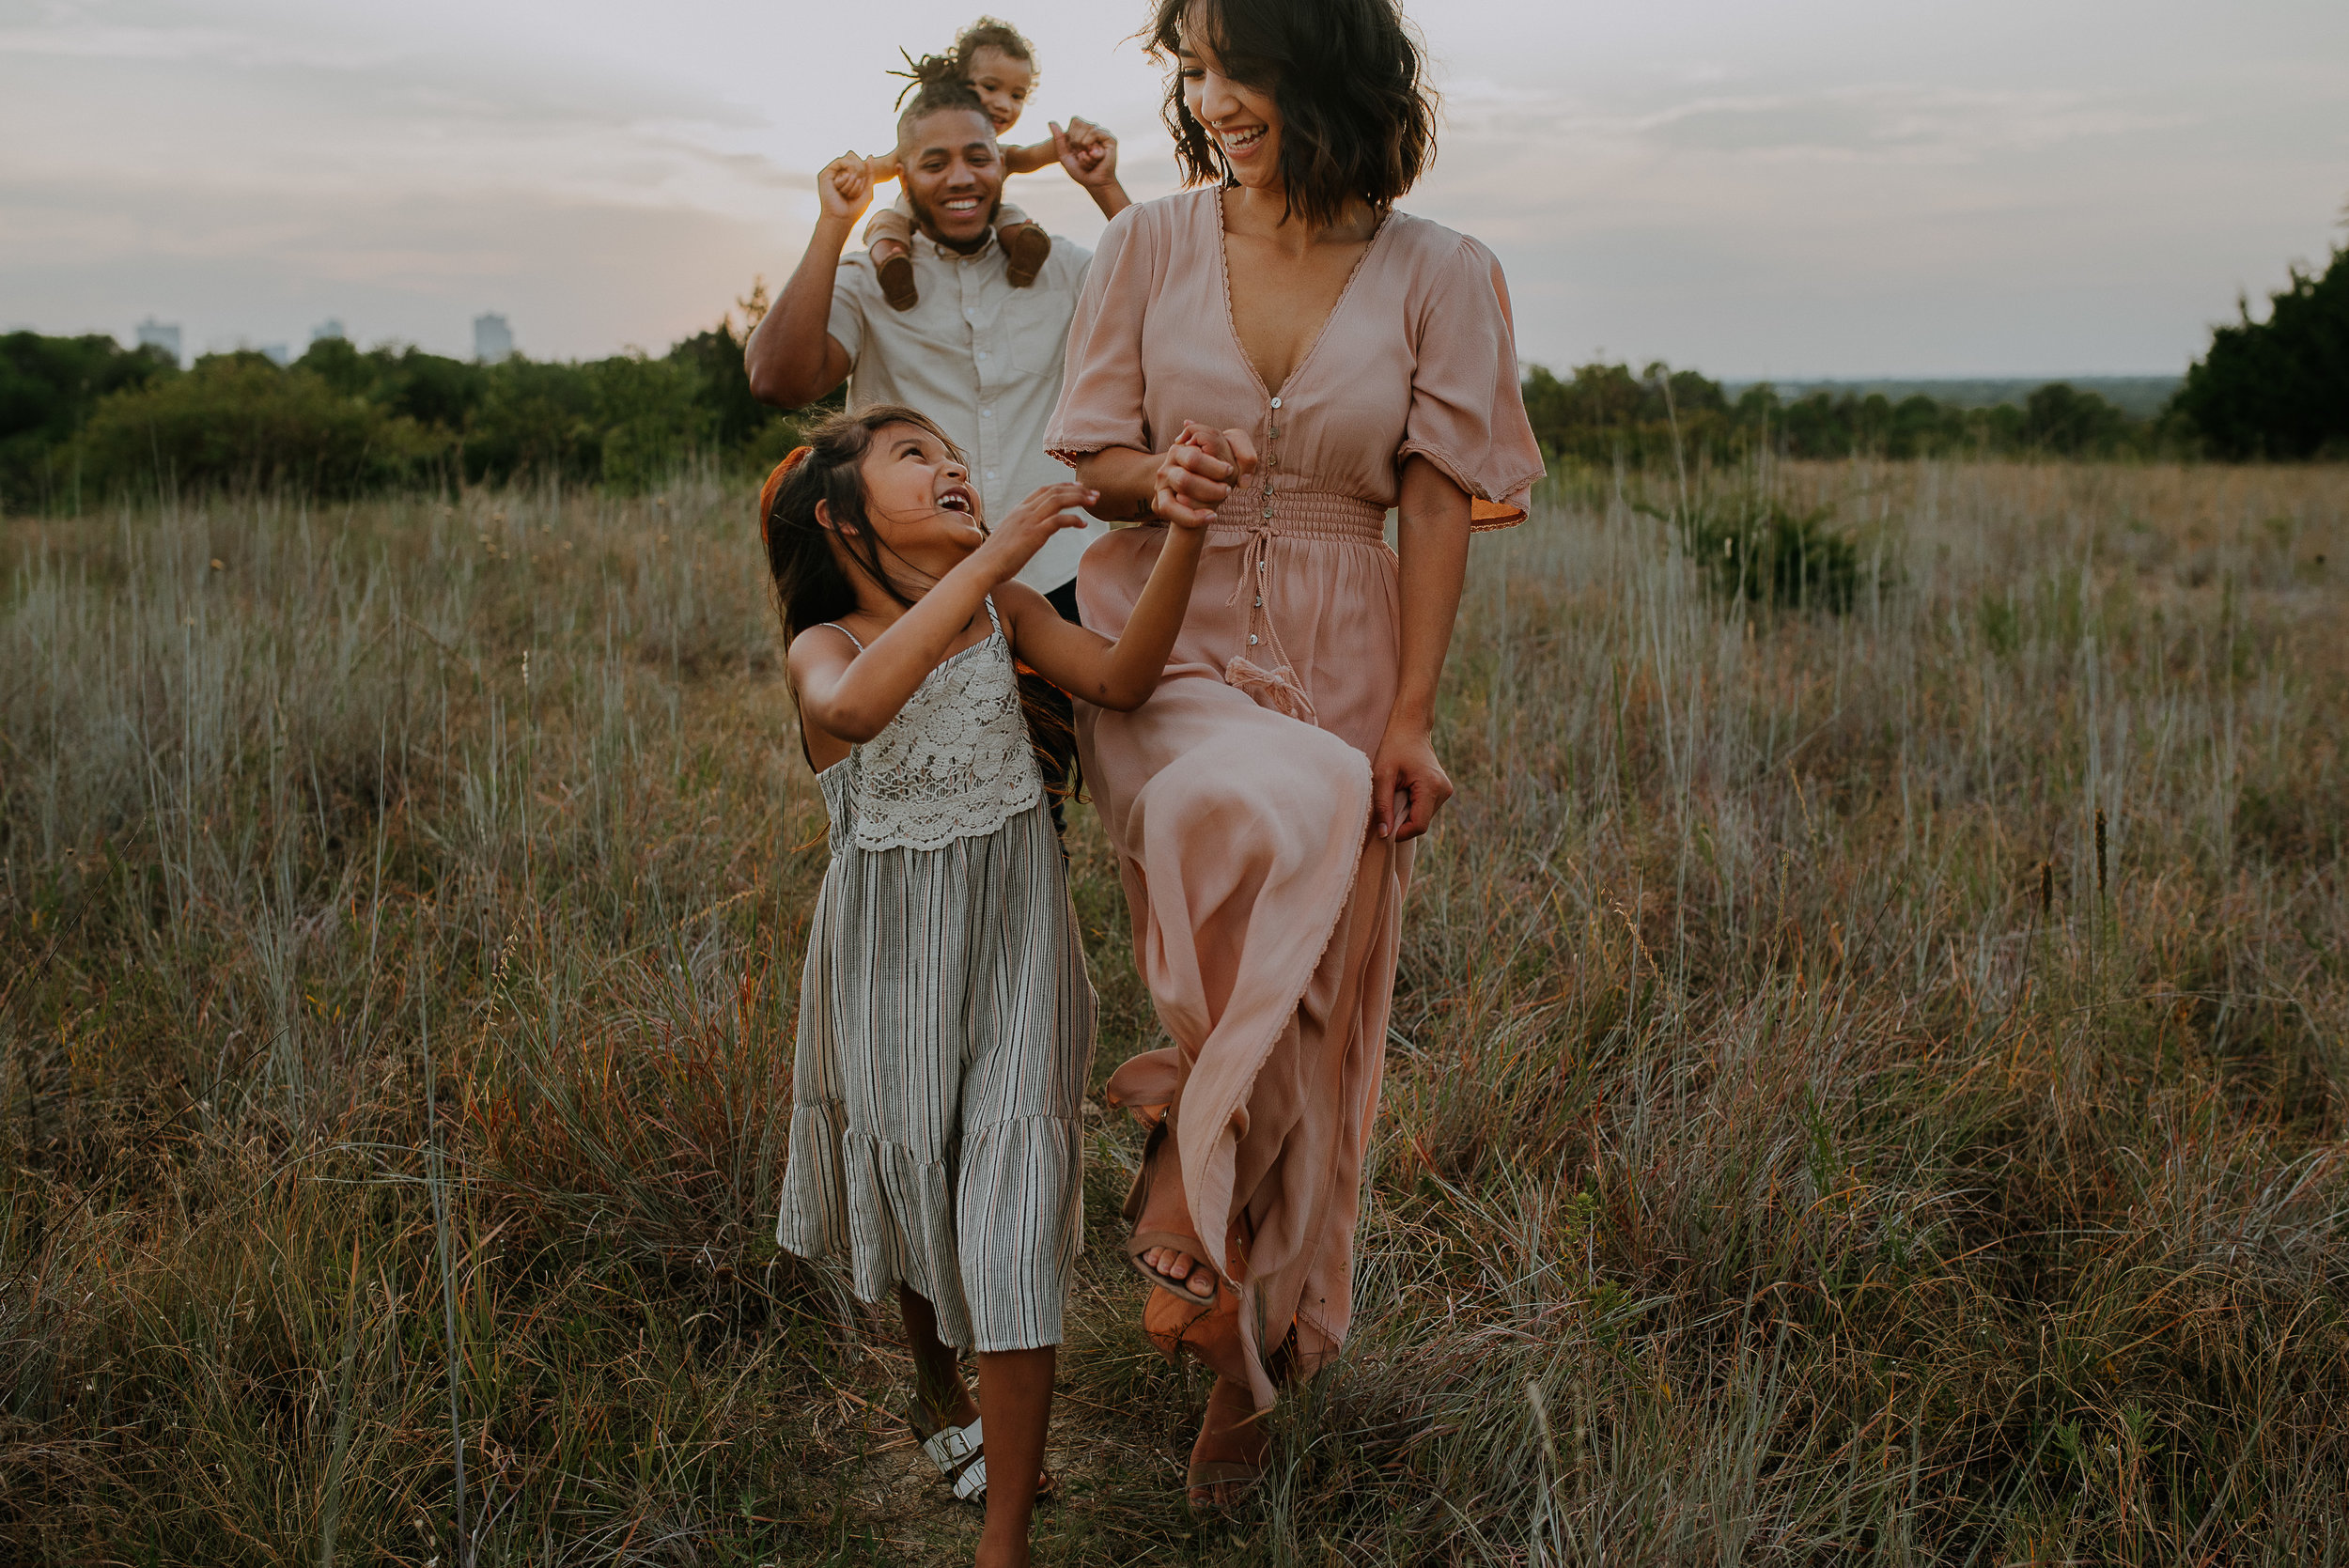 Jessi-marie-photography-dallas-fort-worth-texas-family-photographer-tandy-hills-natural-area-35